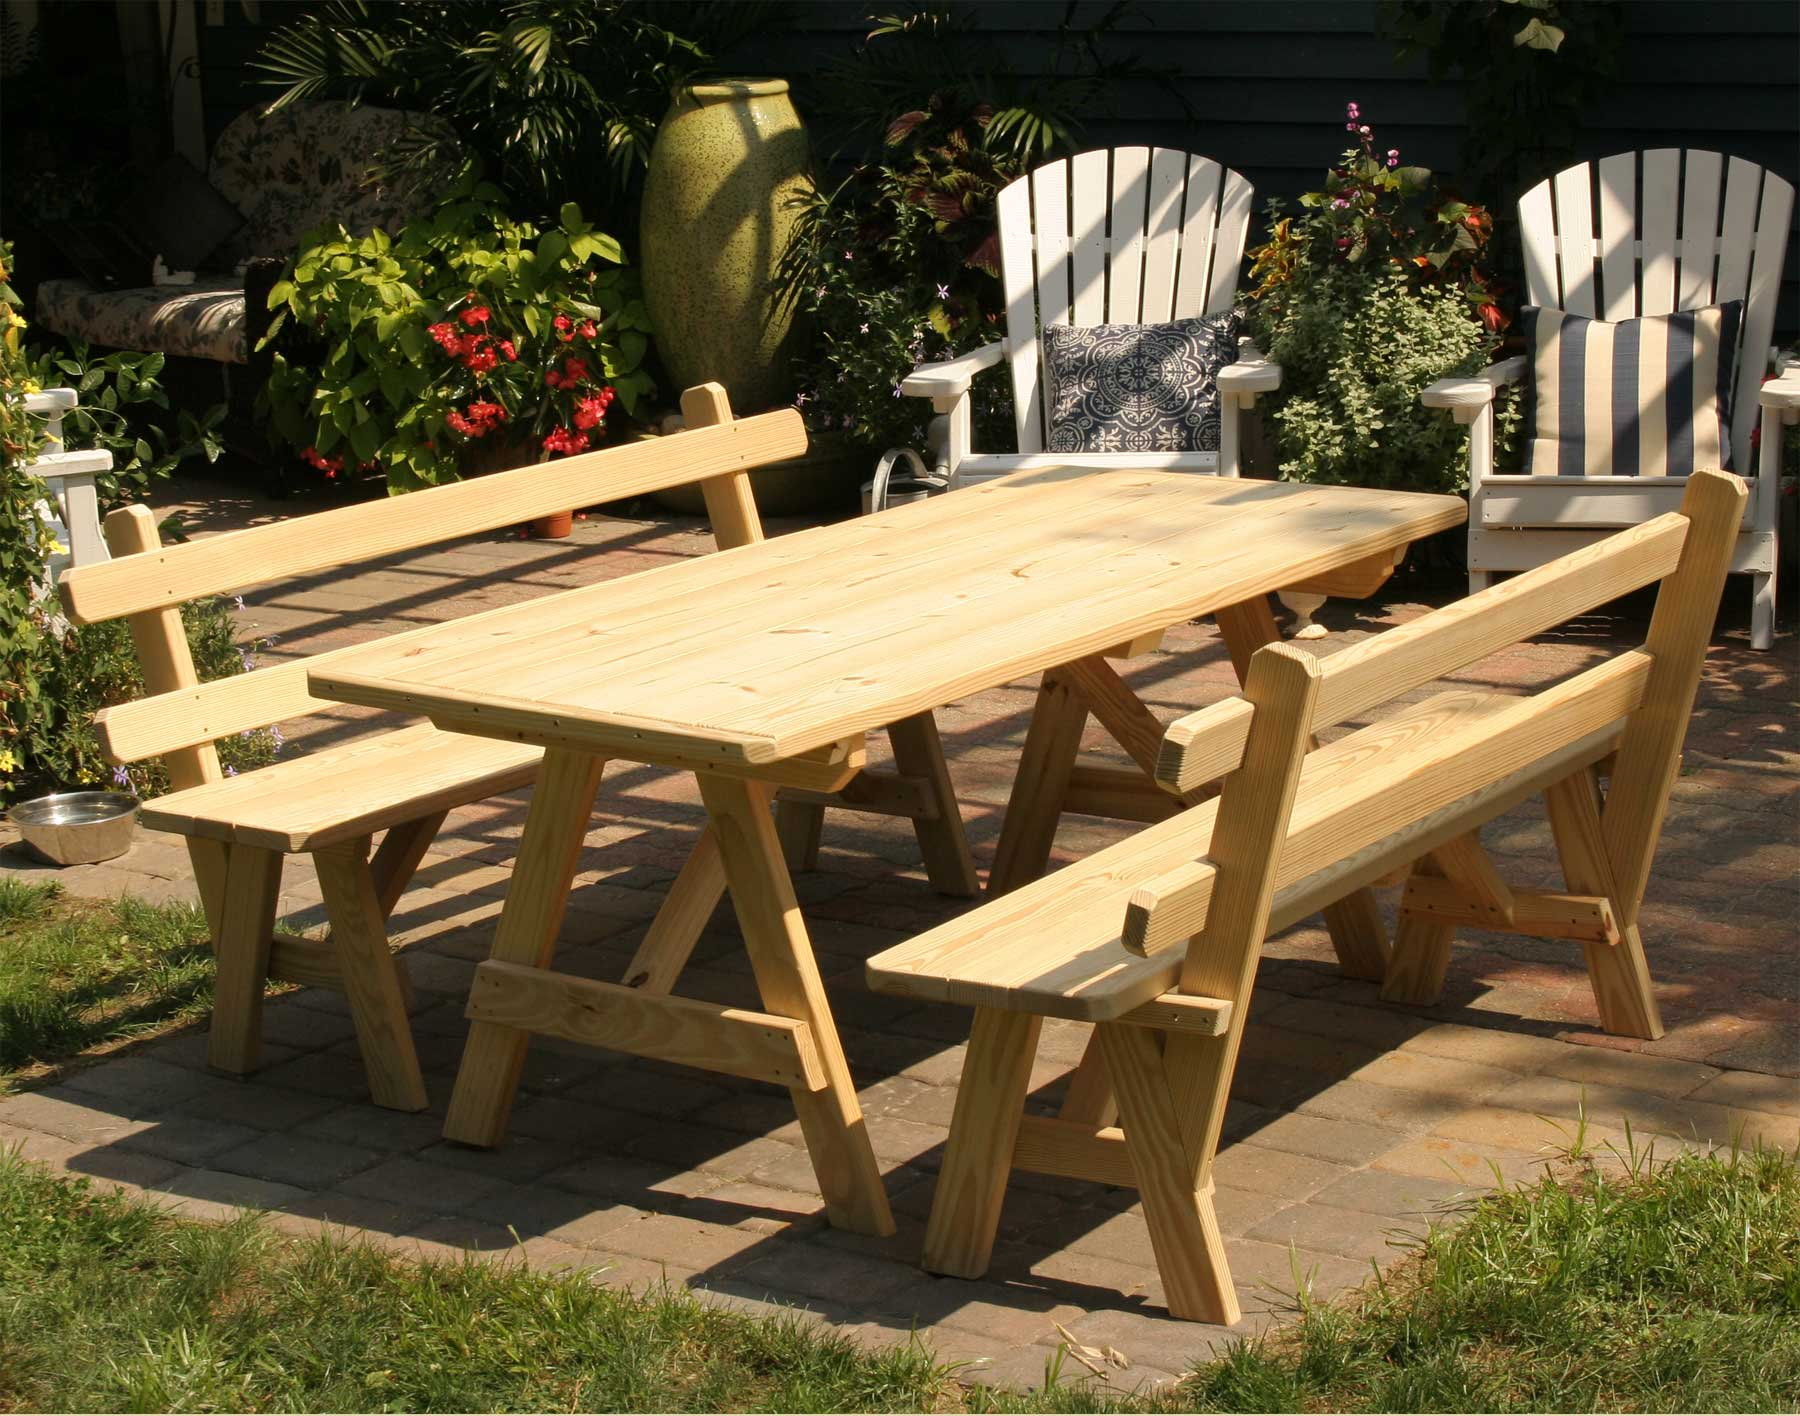 plans for wooden outdoor benches